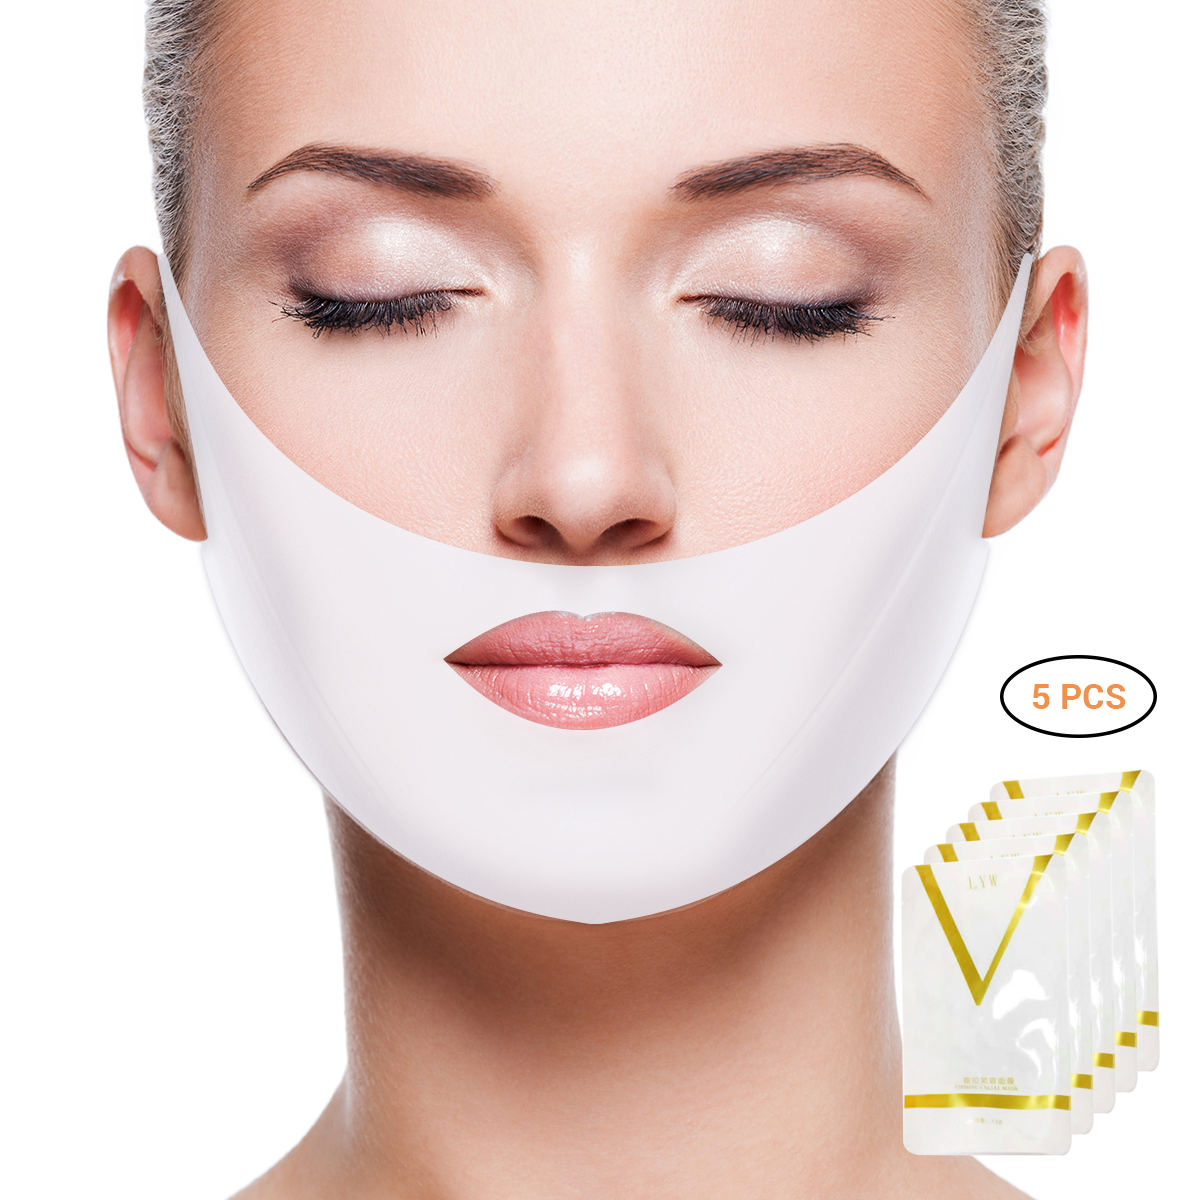 5pcs Double V Face Shape Tension Firming Face Mask Slimming Eliminate Edema Lifting Firming Thin Masseter Face Care Tool(China)